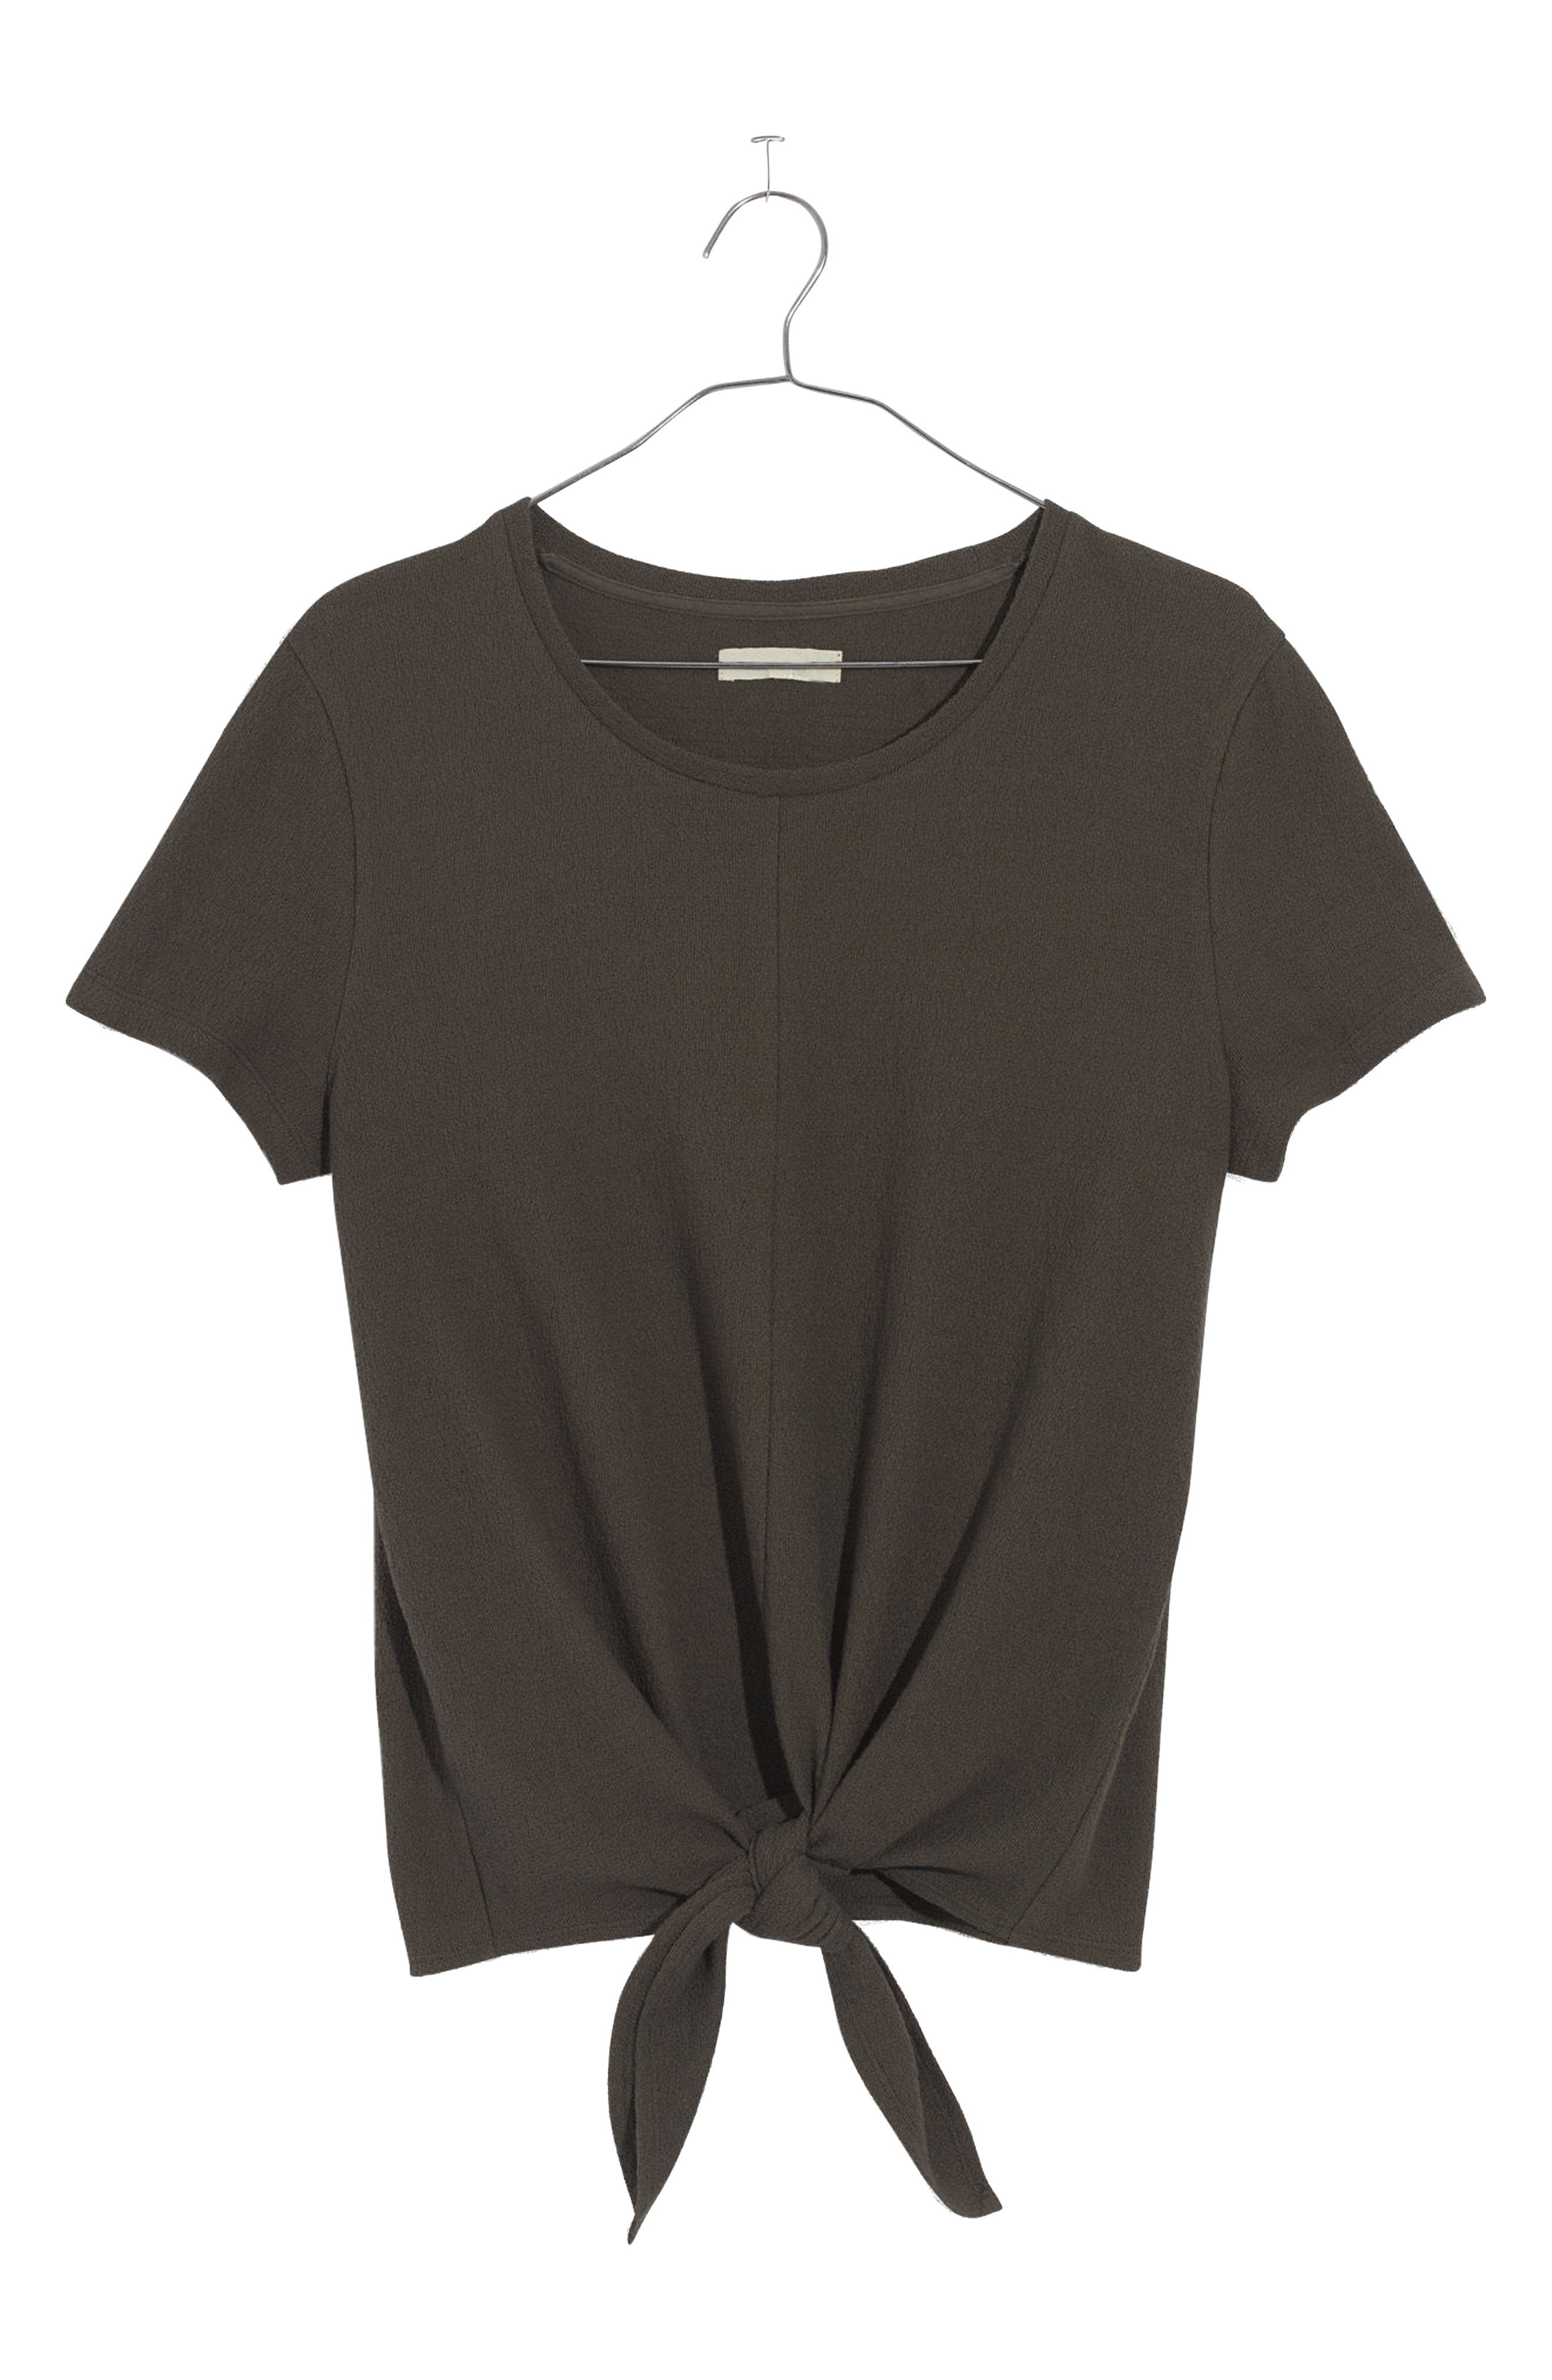 MADEWELL,                             Modern Tie Front Tee,                             Alternate thumbnail 4, color,                             300